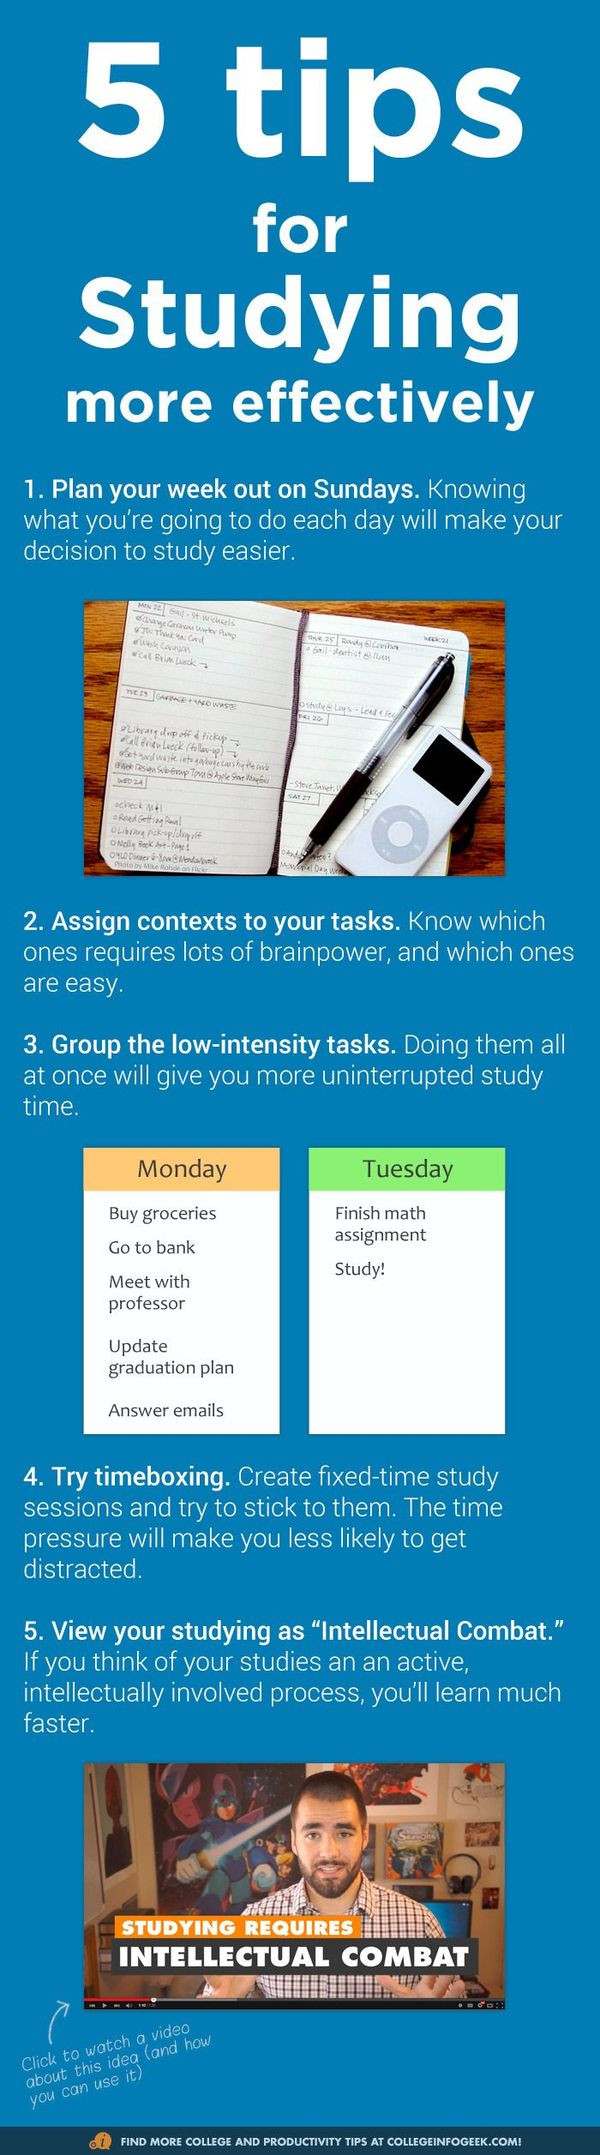 [Infograph] 5 Tips for Studying More Effectively - CPA Zone